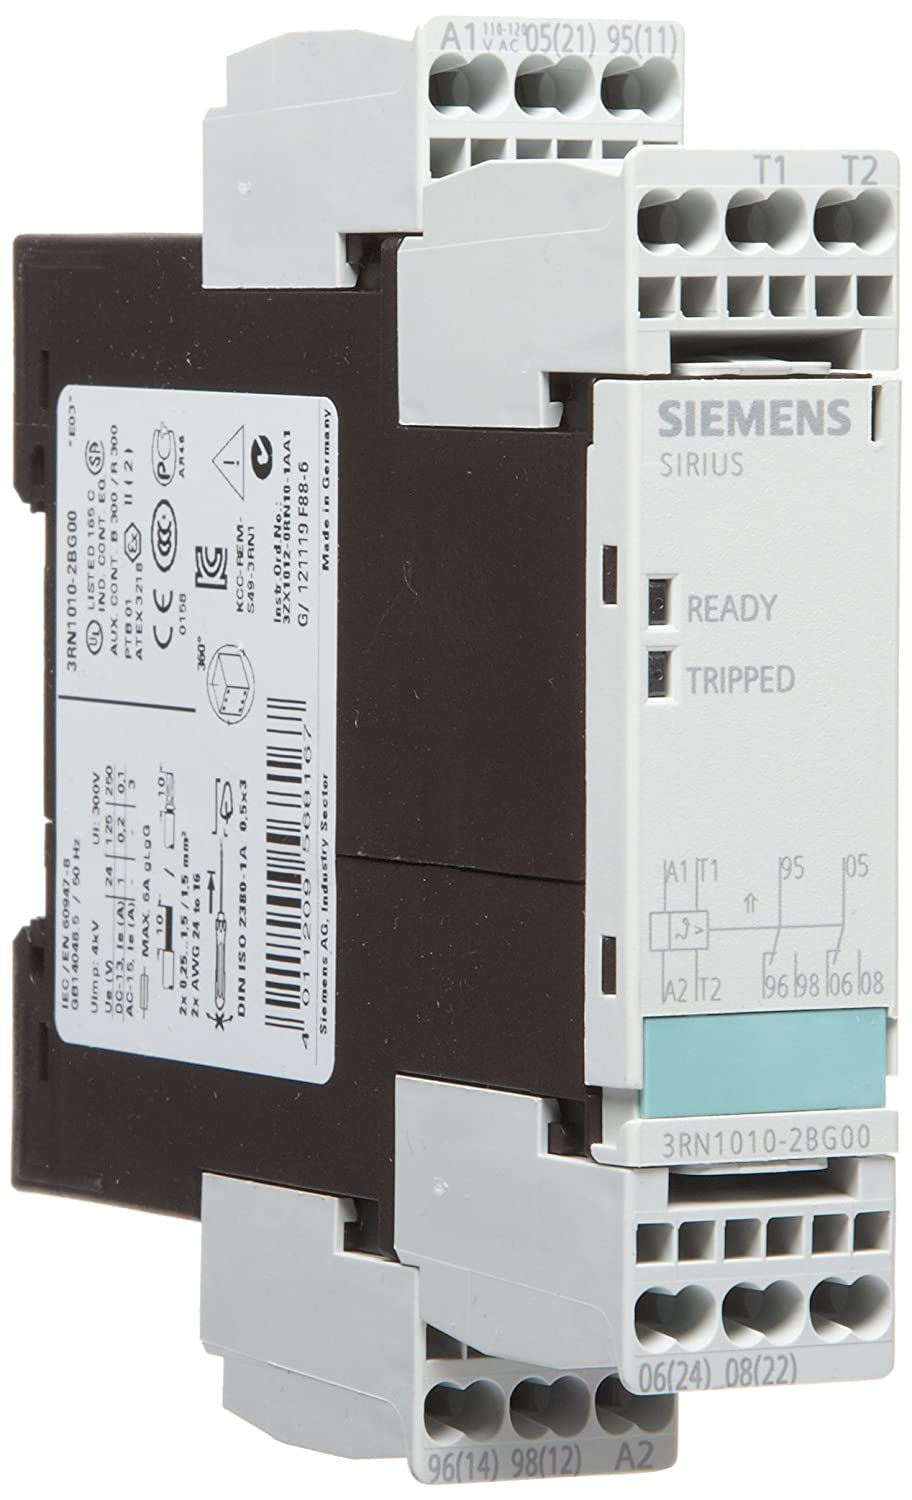 Siemens 3RN1010-2BG0 0 Thermistor Motor Protection Relay 22.5mm Width 2 CO Contacts Standard Evaluation Units 2 LEDs Cage Clamp Terminal Auto Reset 110VAC Control Supply Voltage